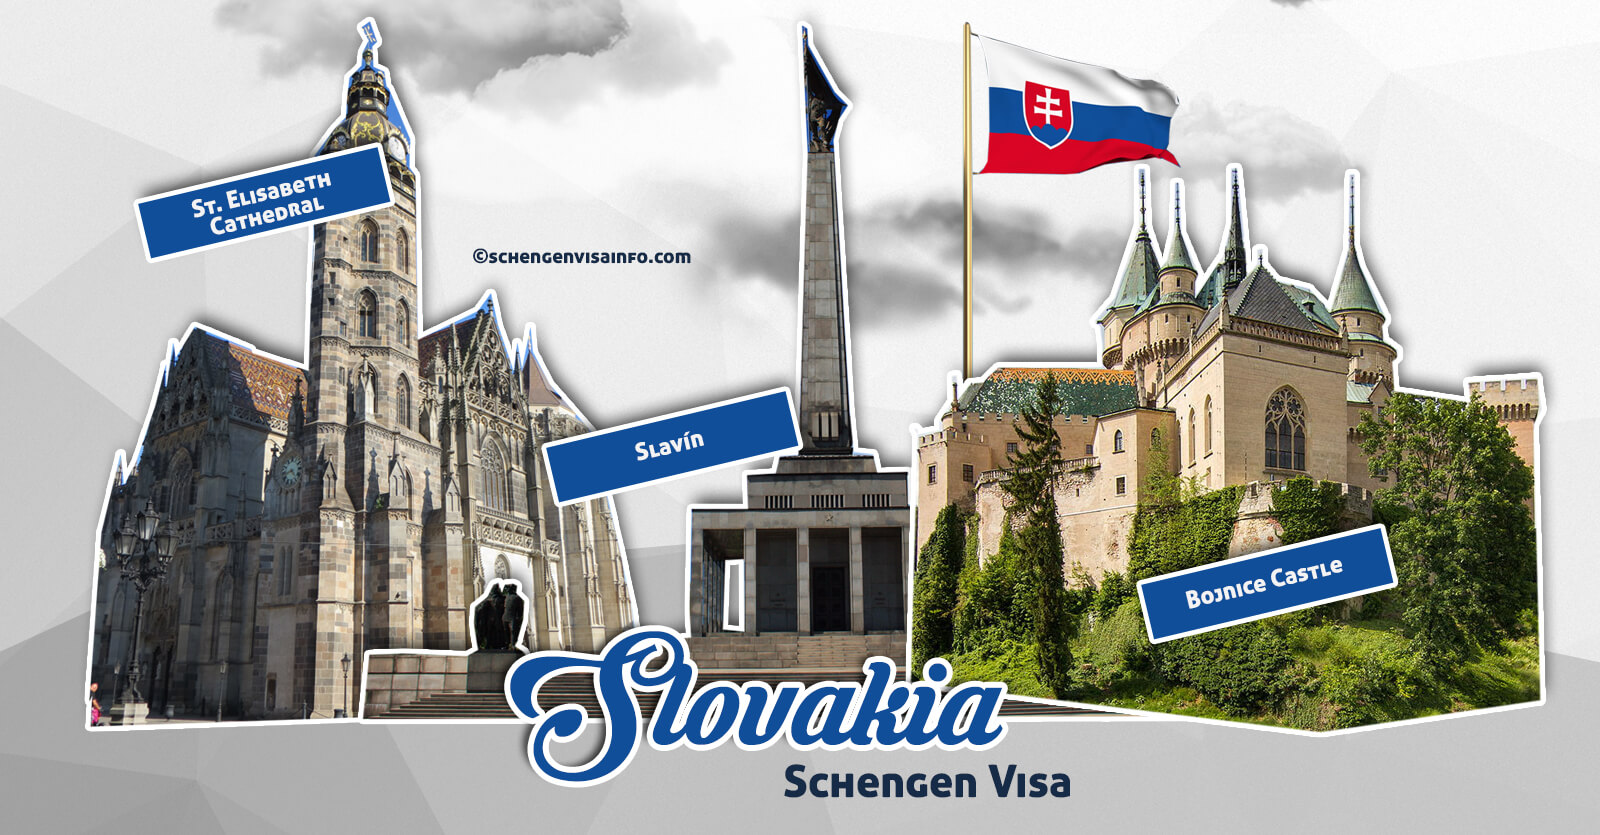 invitation letter for visapplication business sample%0A Slovakia Visa Application Requirements